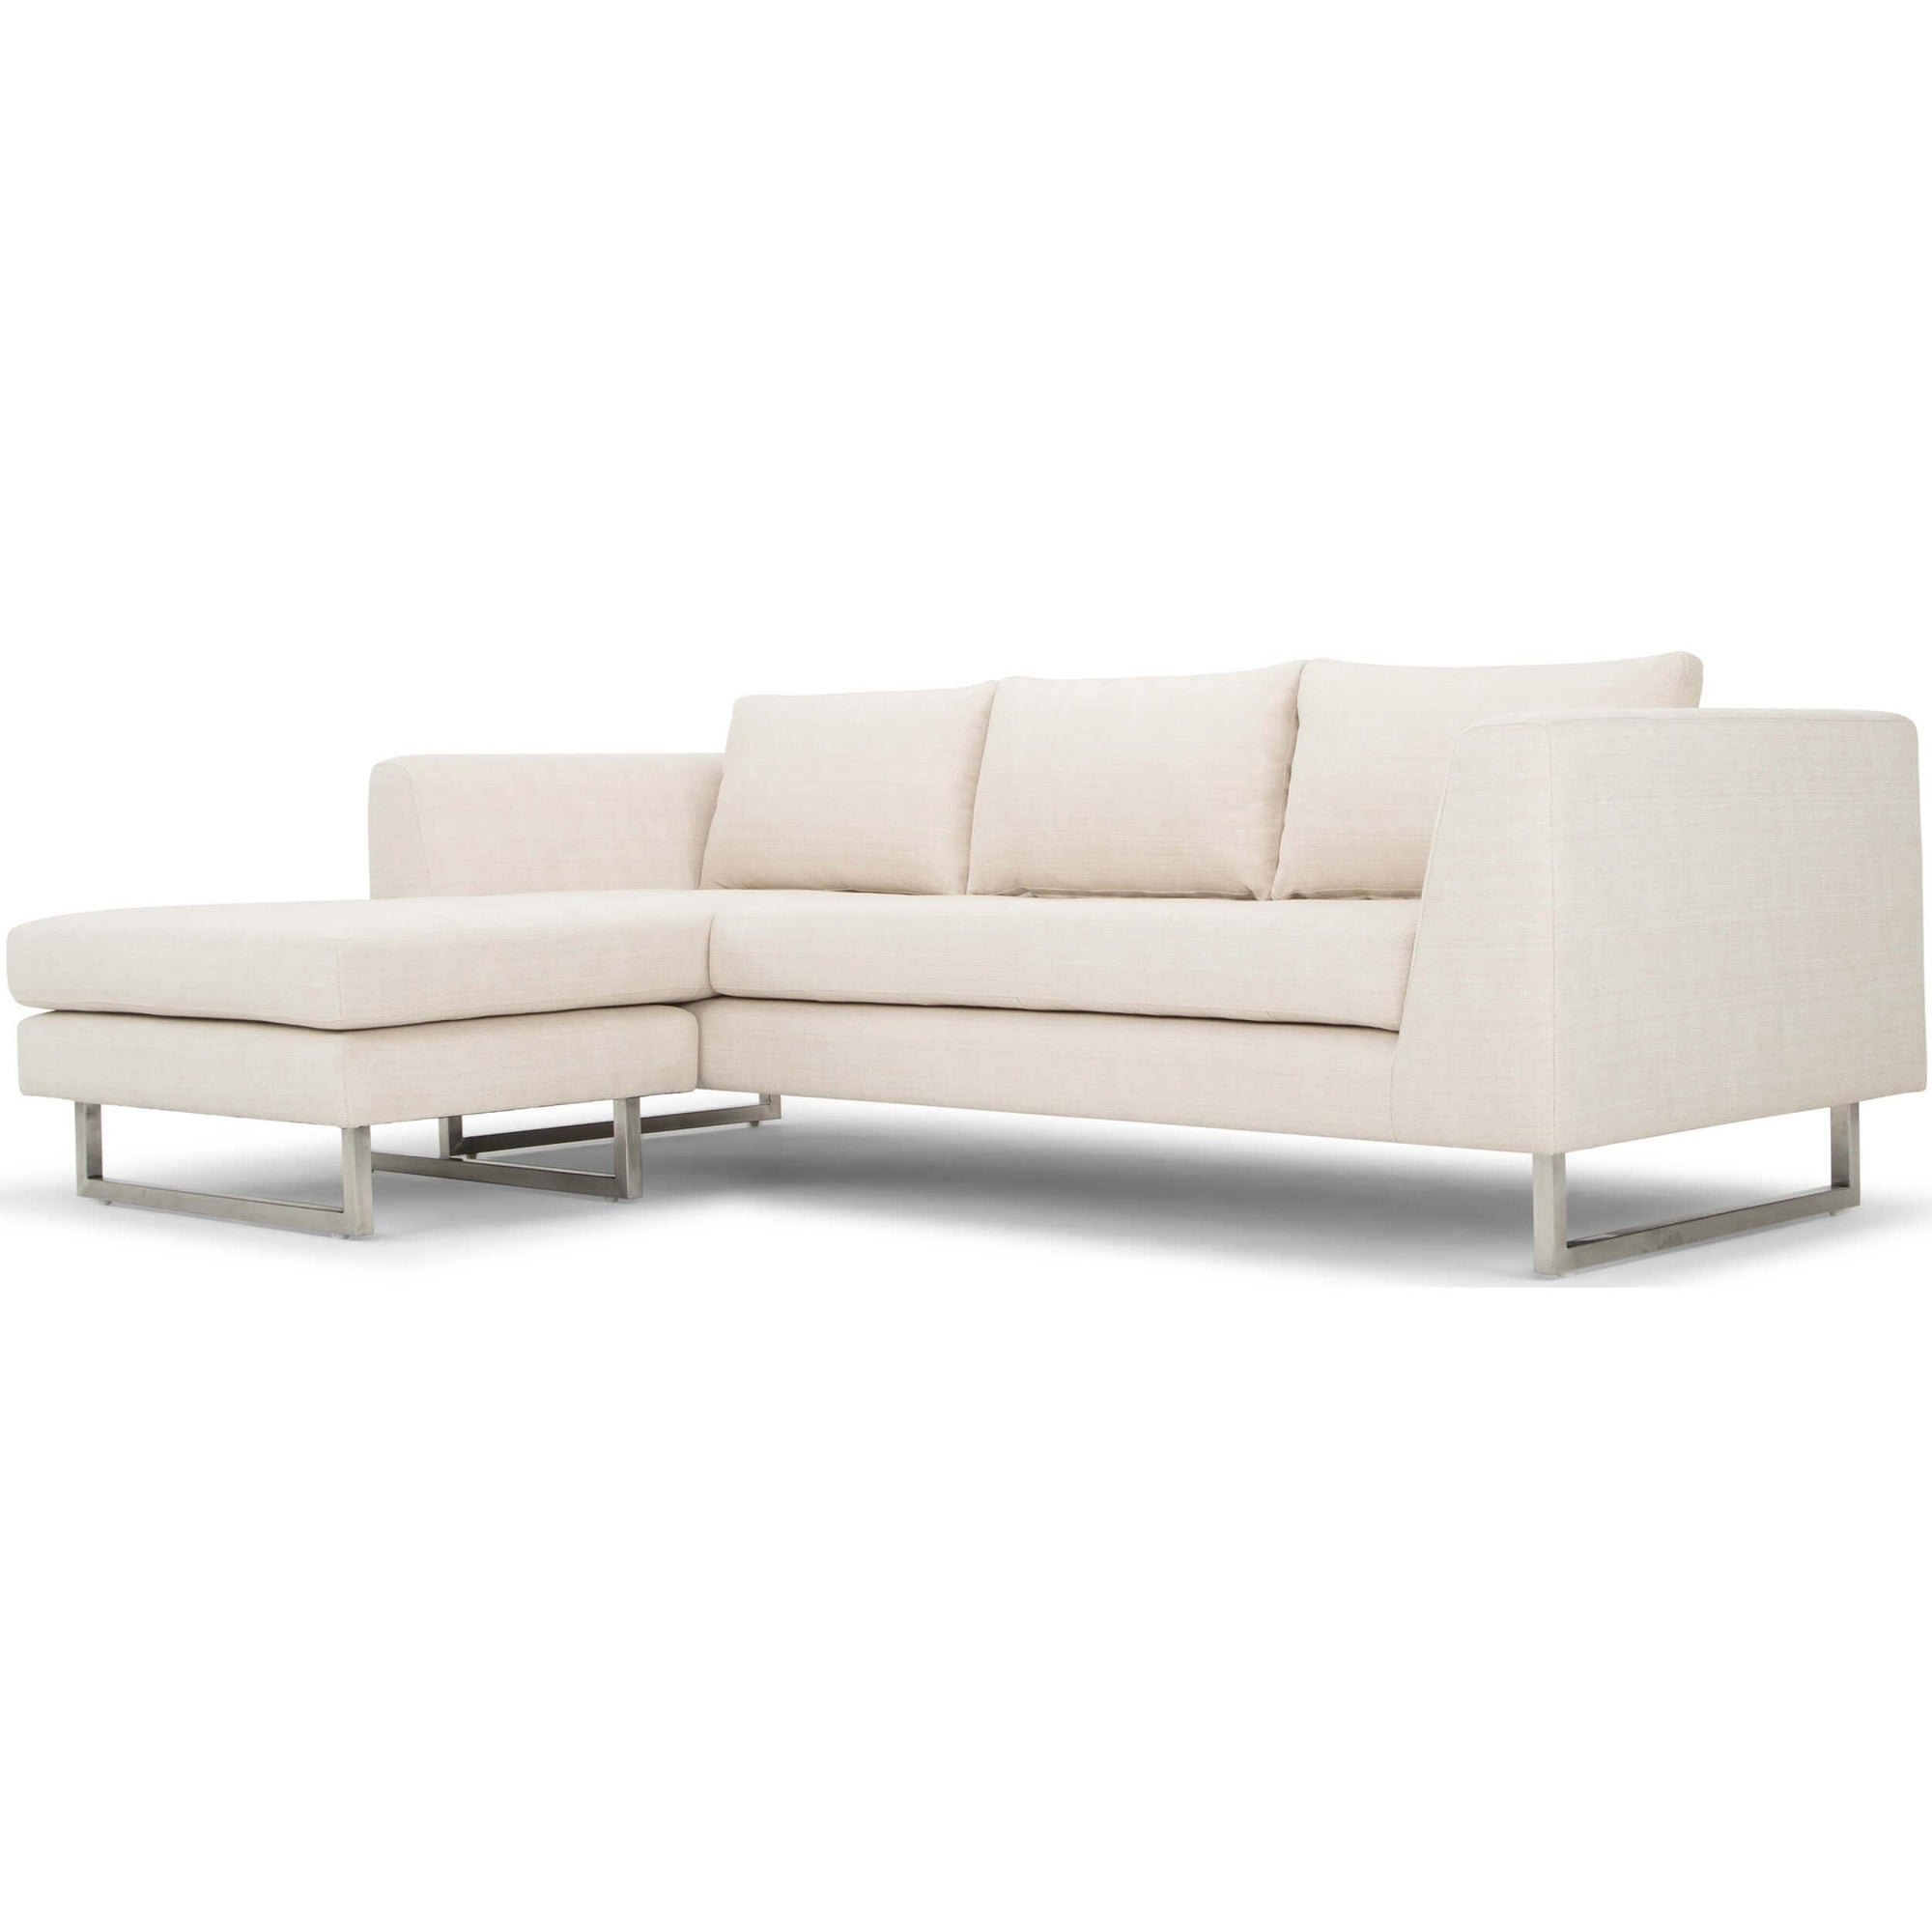 Pleasant Matthew Sectional Sand High Fashion Home Ibusinesslaw Wood Chair Design Ideas Ibusinesslaworg